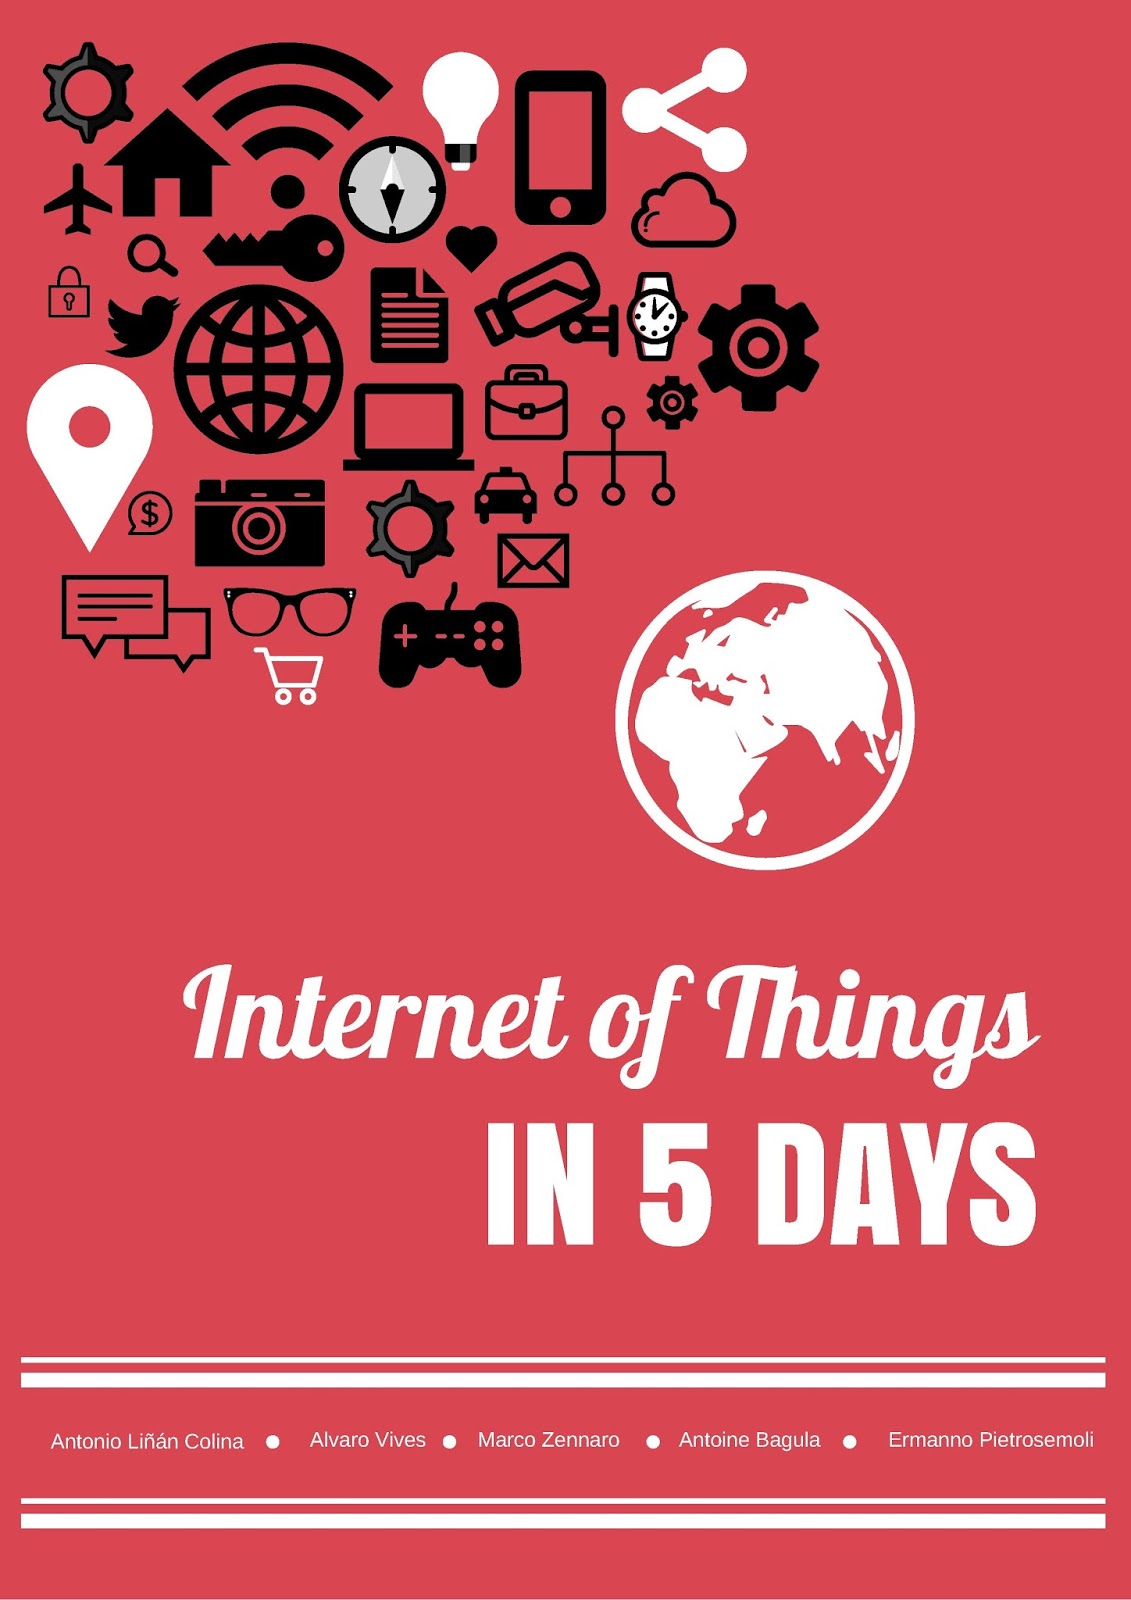 Internet of Things 5 DAYS